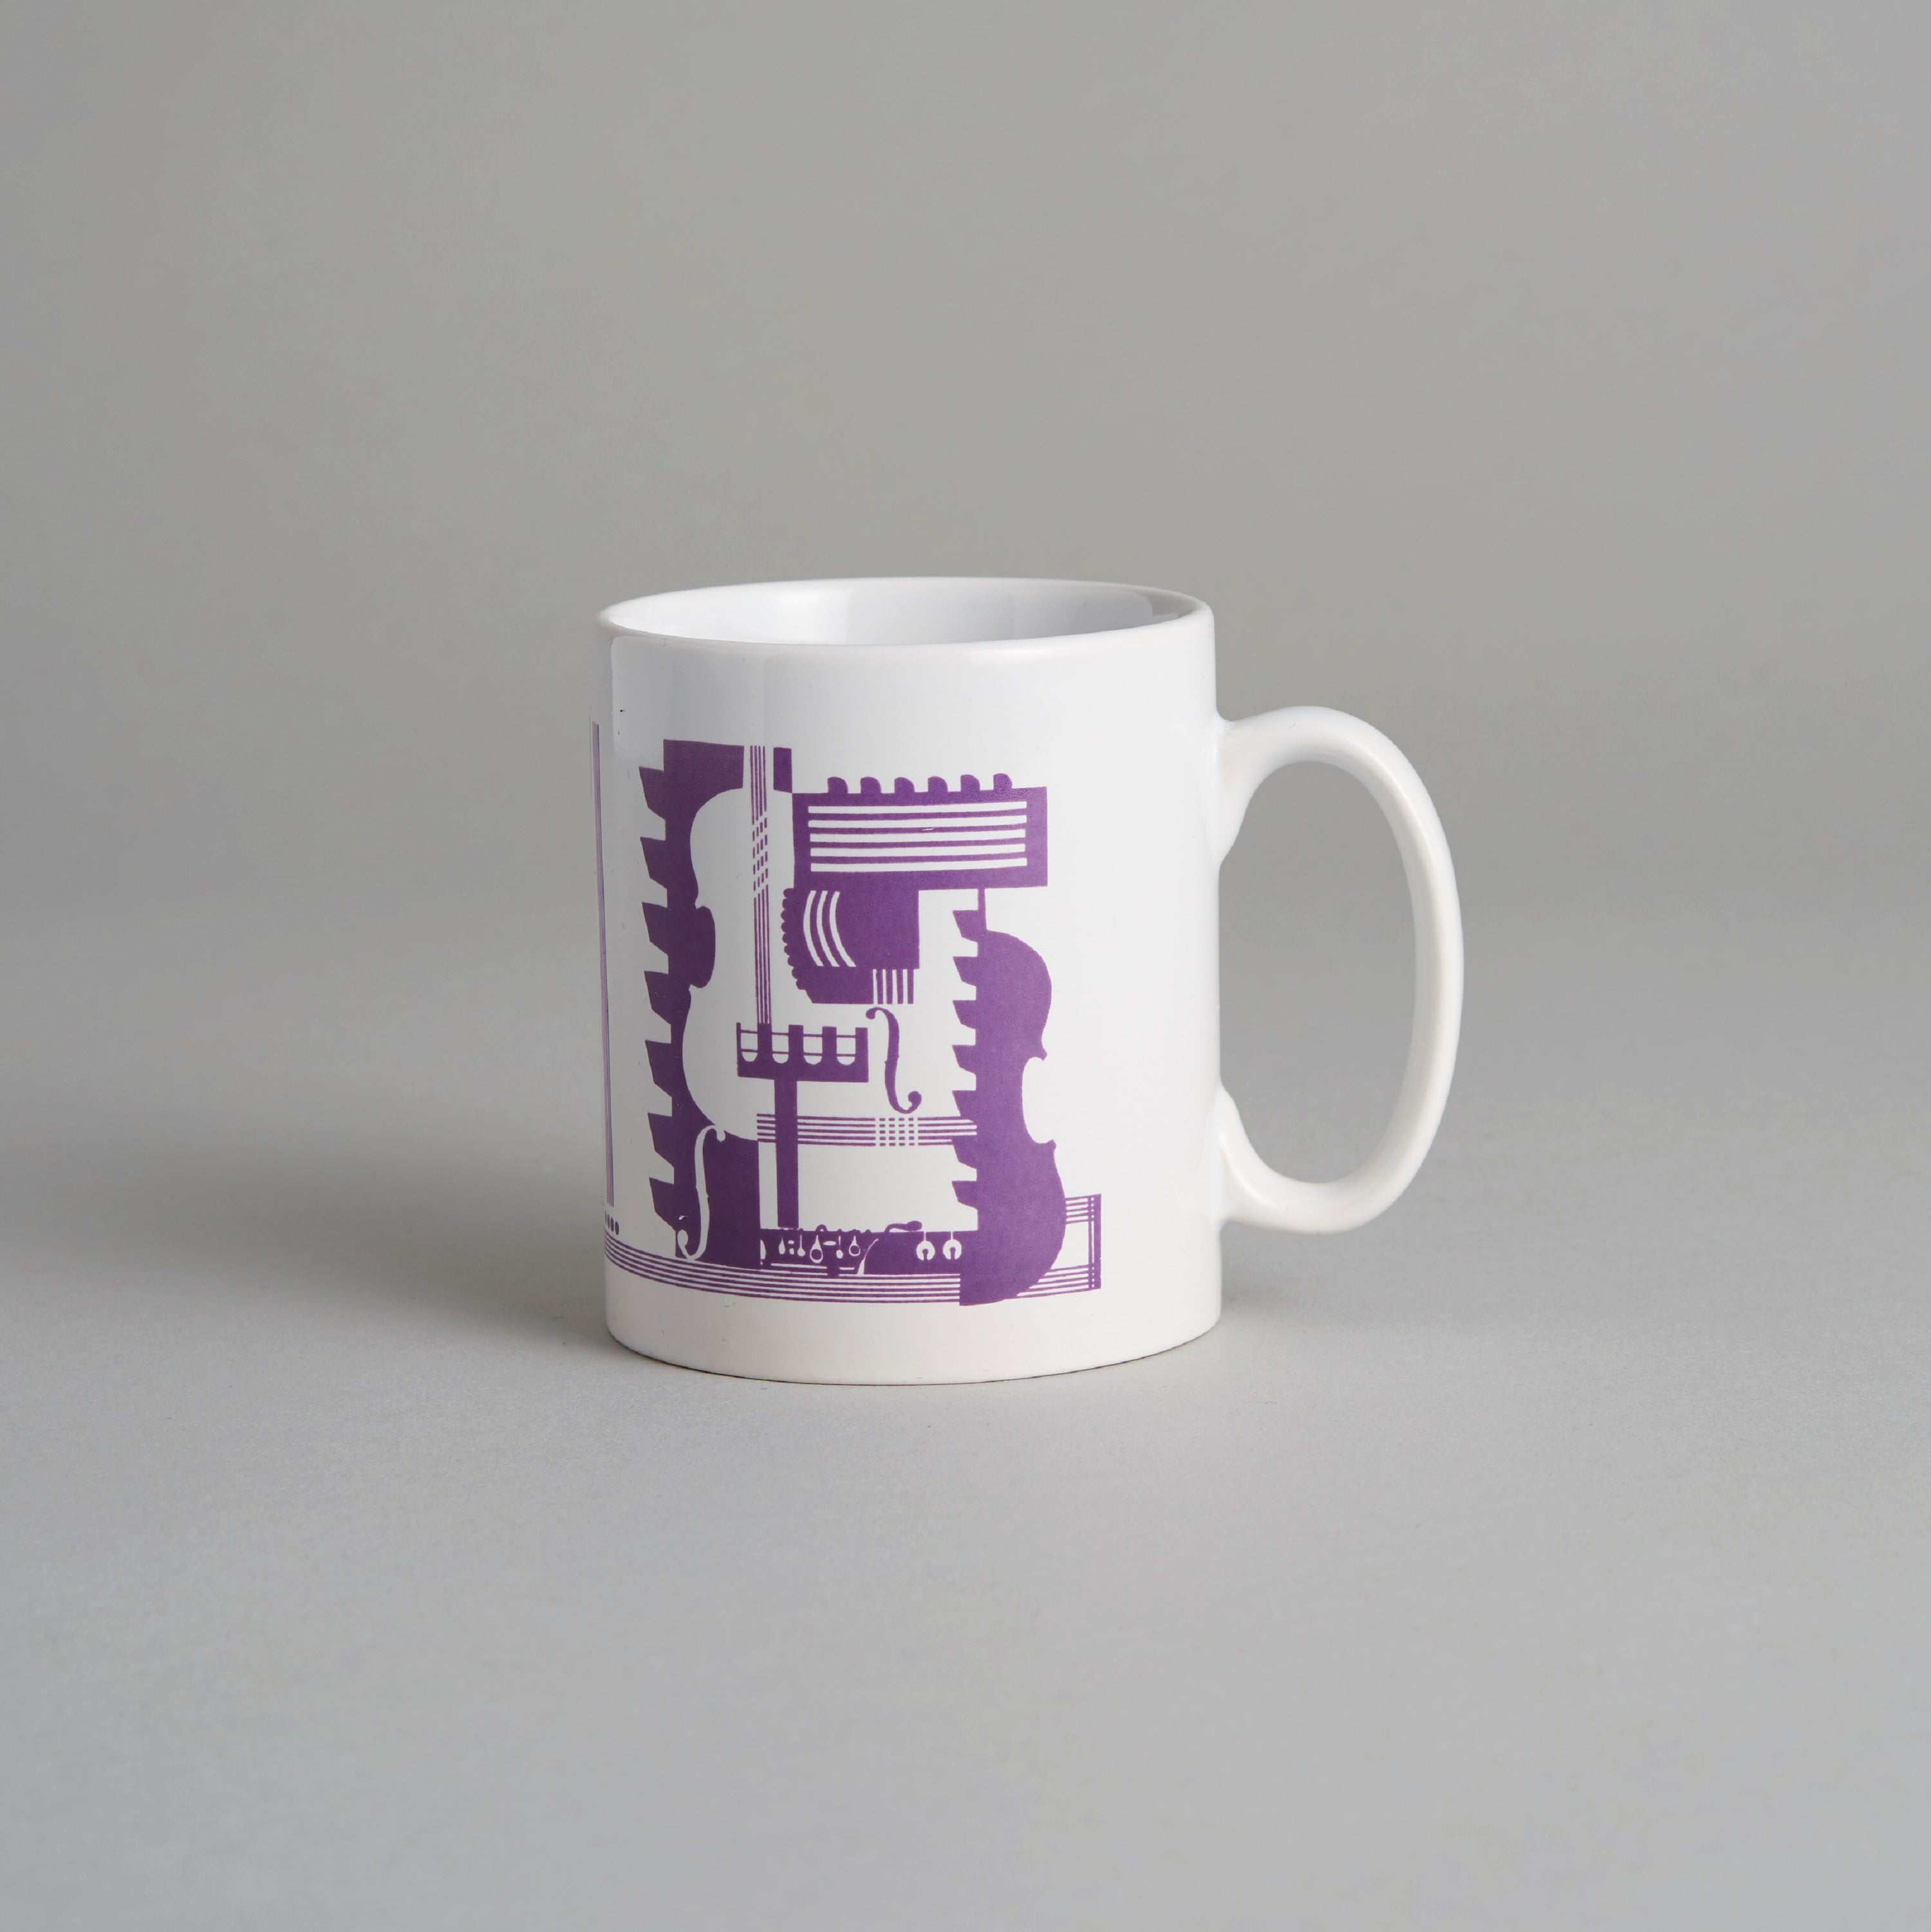 Rhythms Mug by Kate Farley